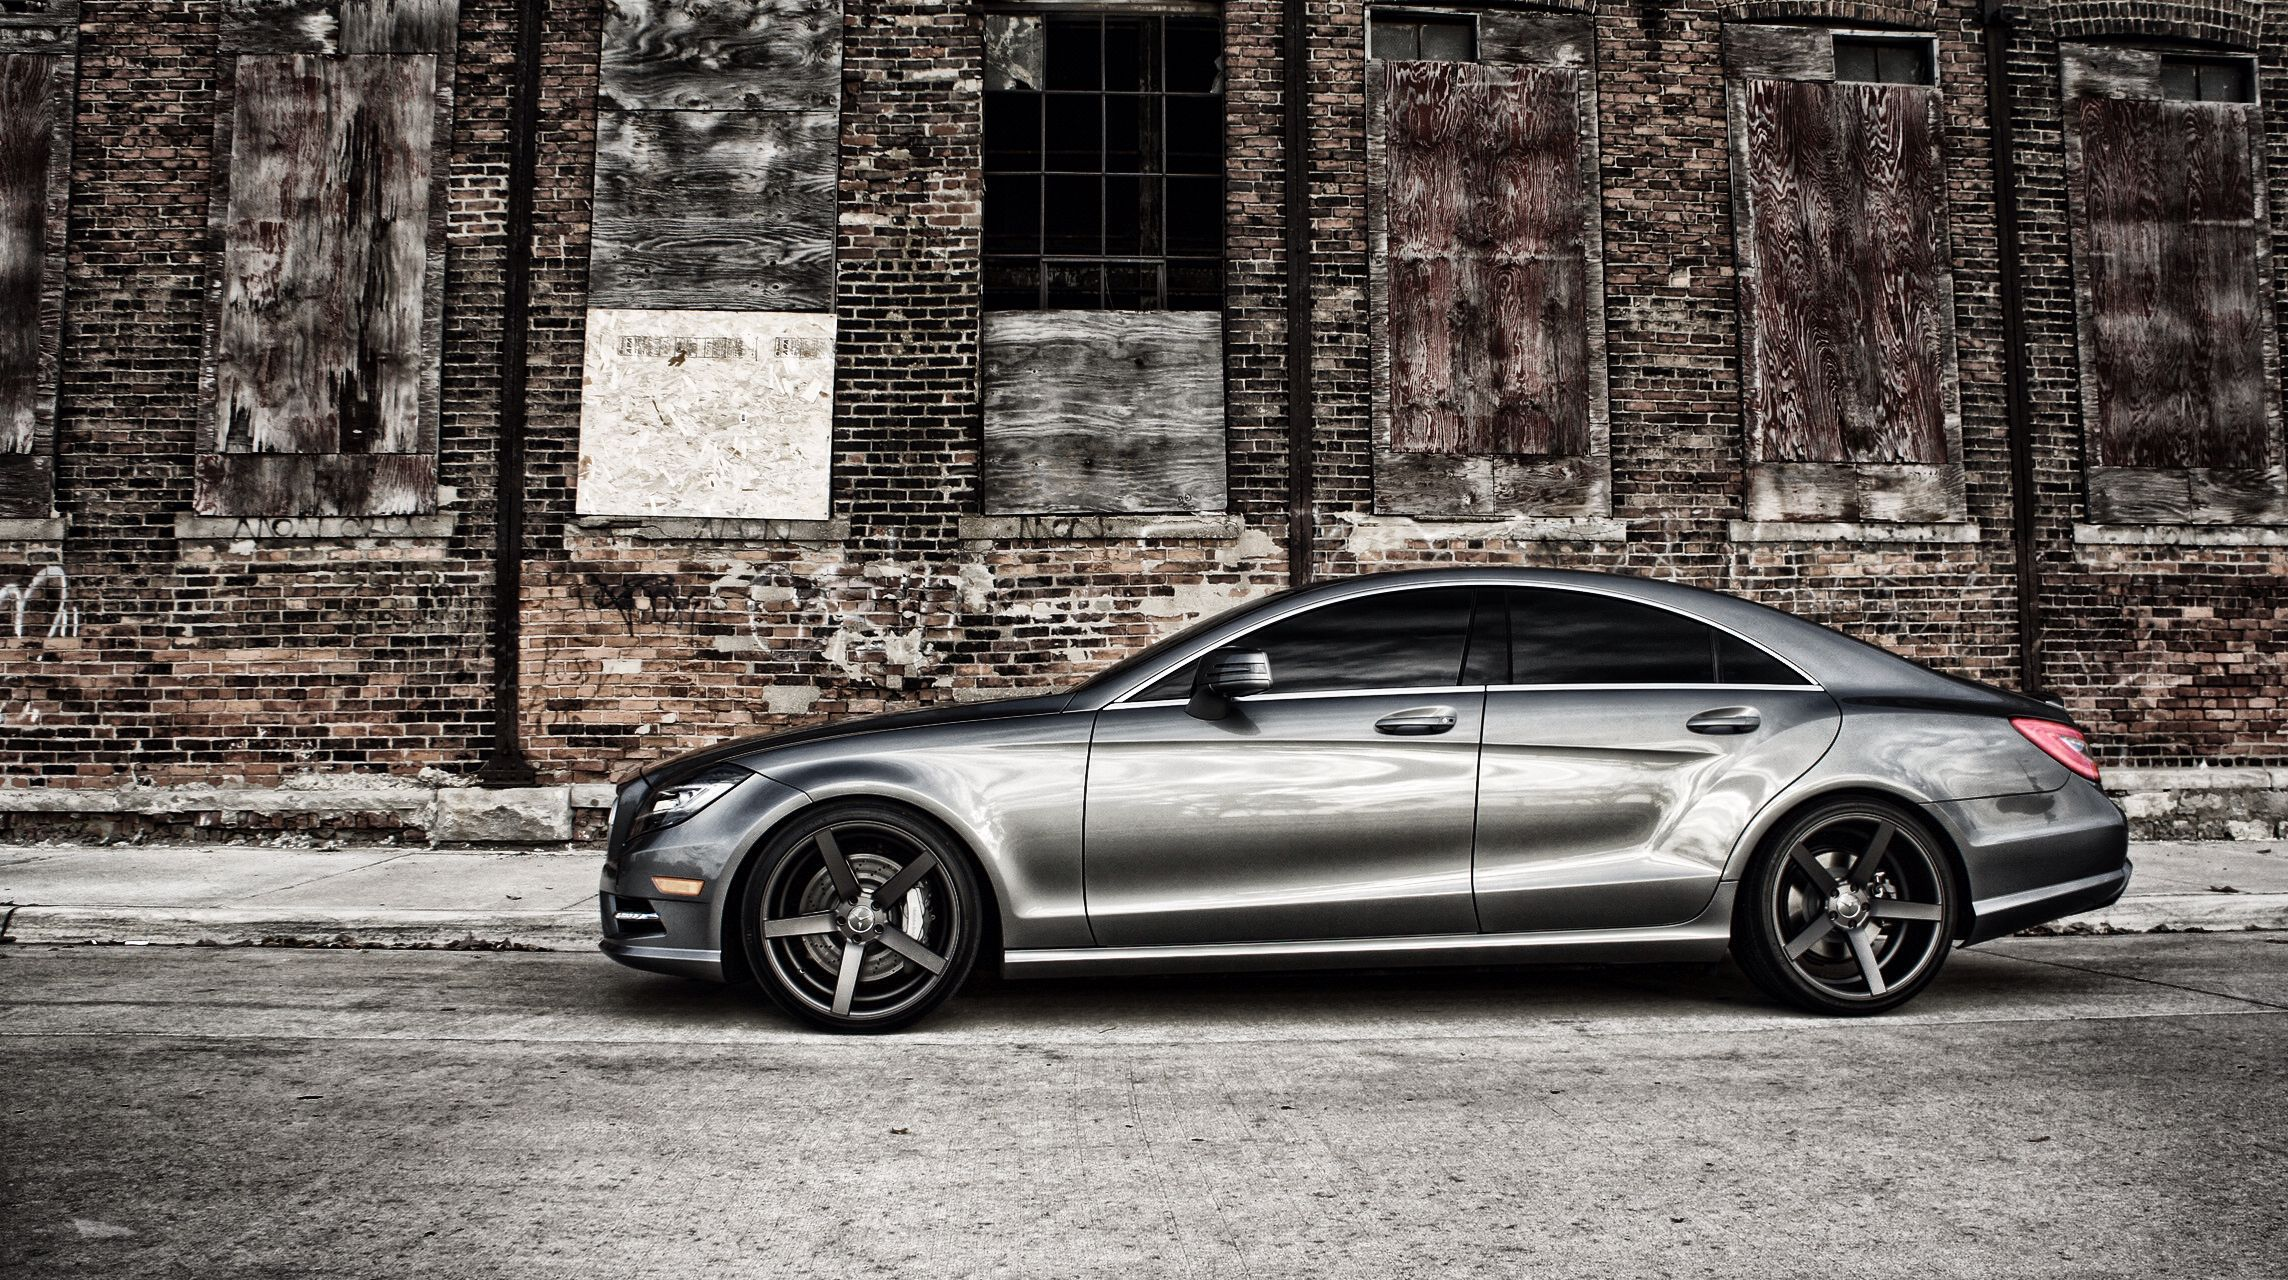 2013 Mercedes CLS 550 Cars Pinterest